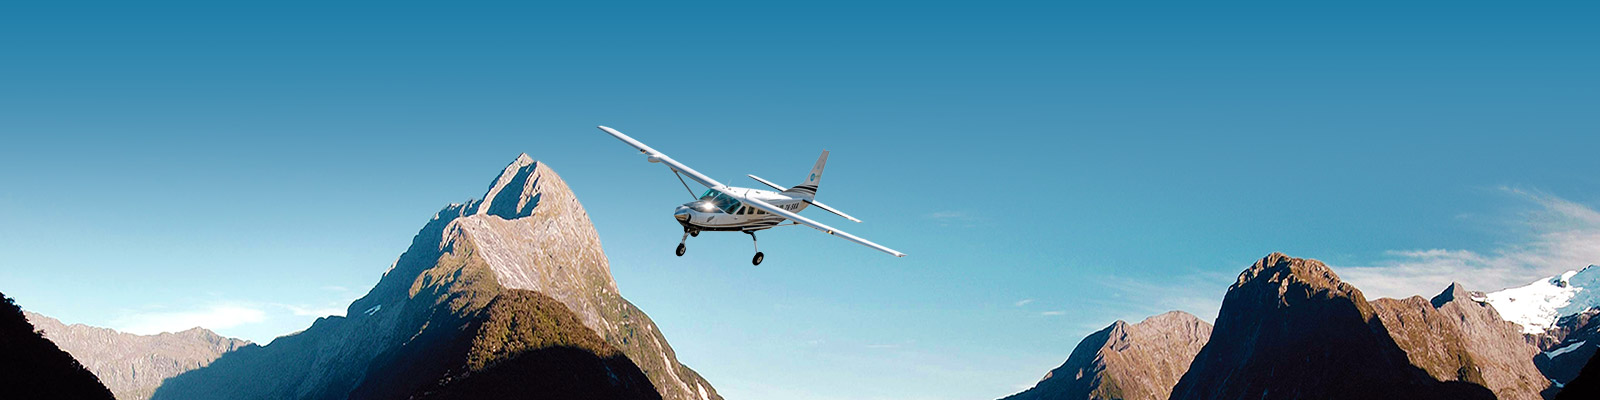 Milford Sound Coach Cruise Fly Deal